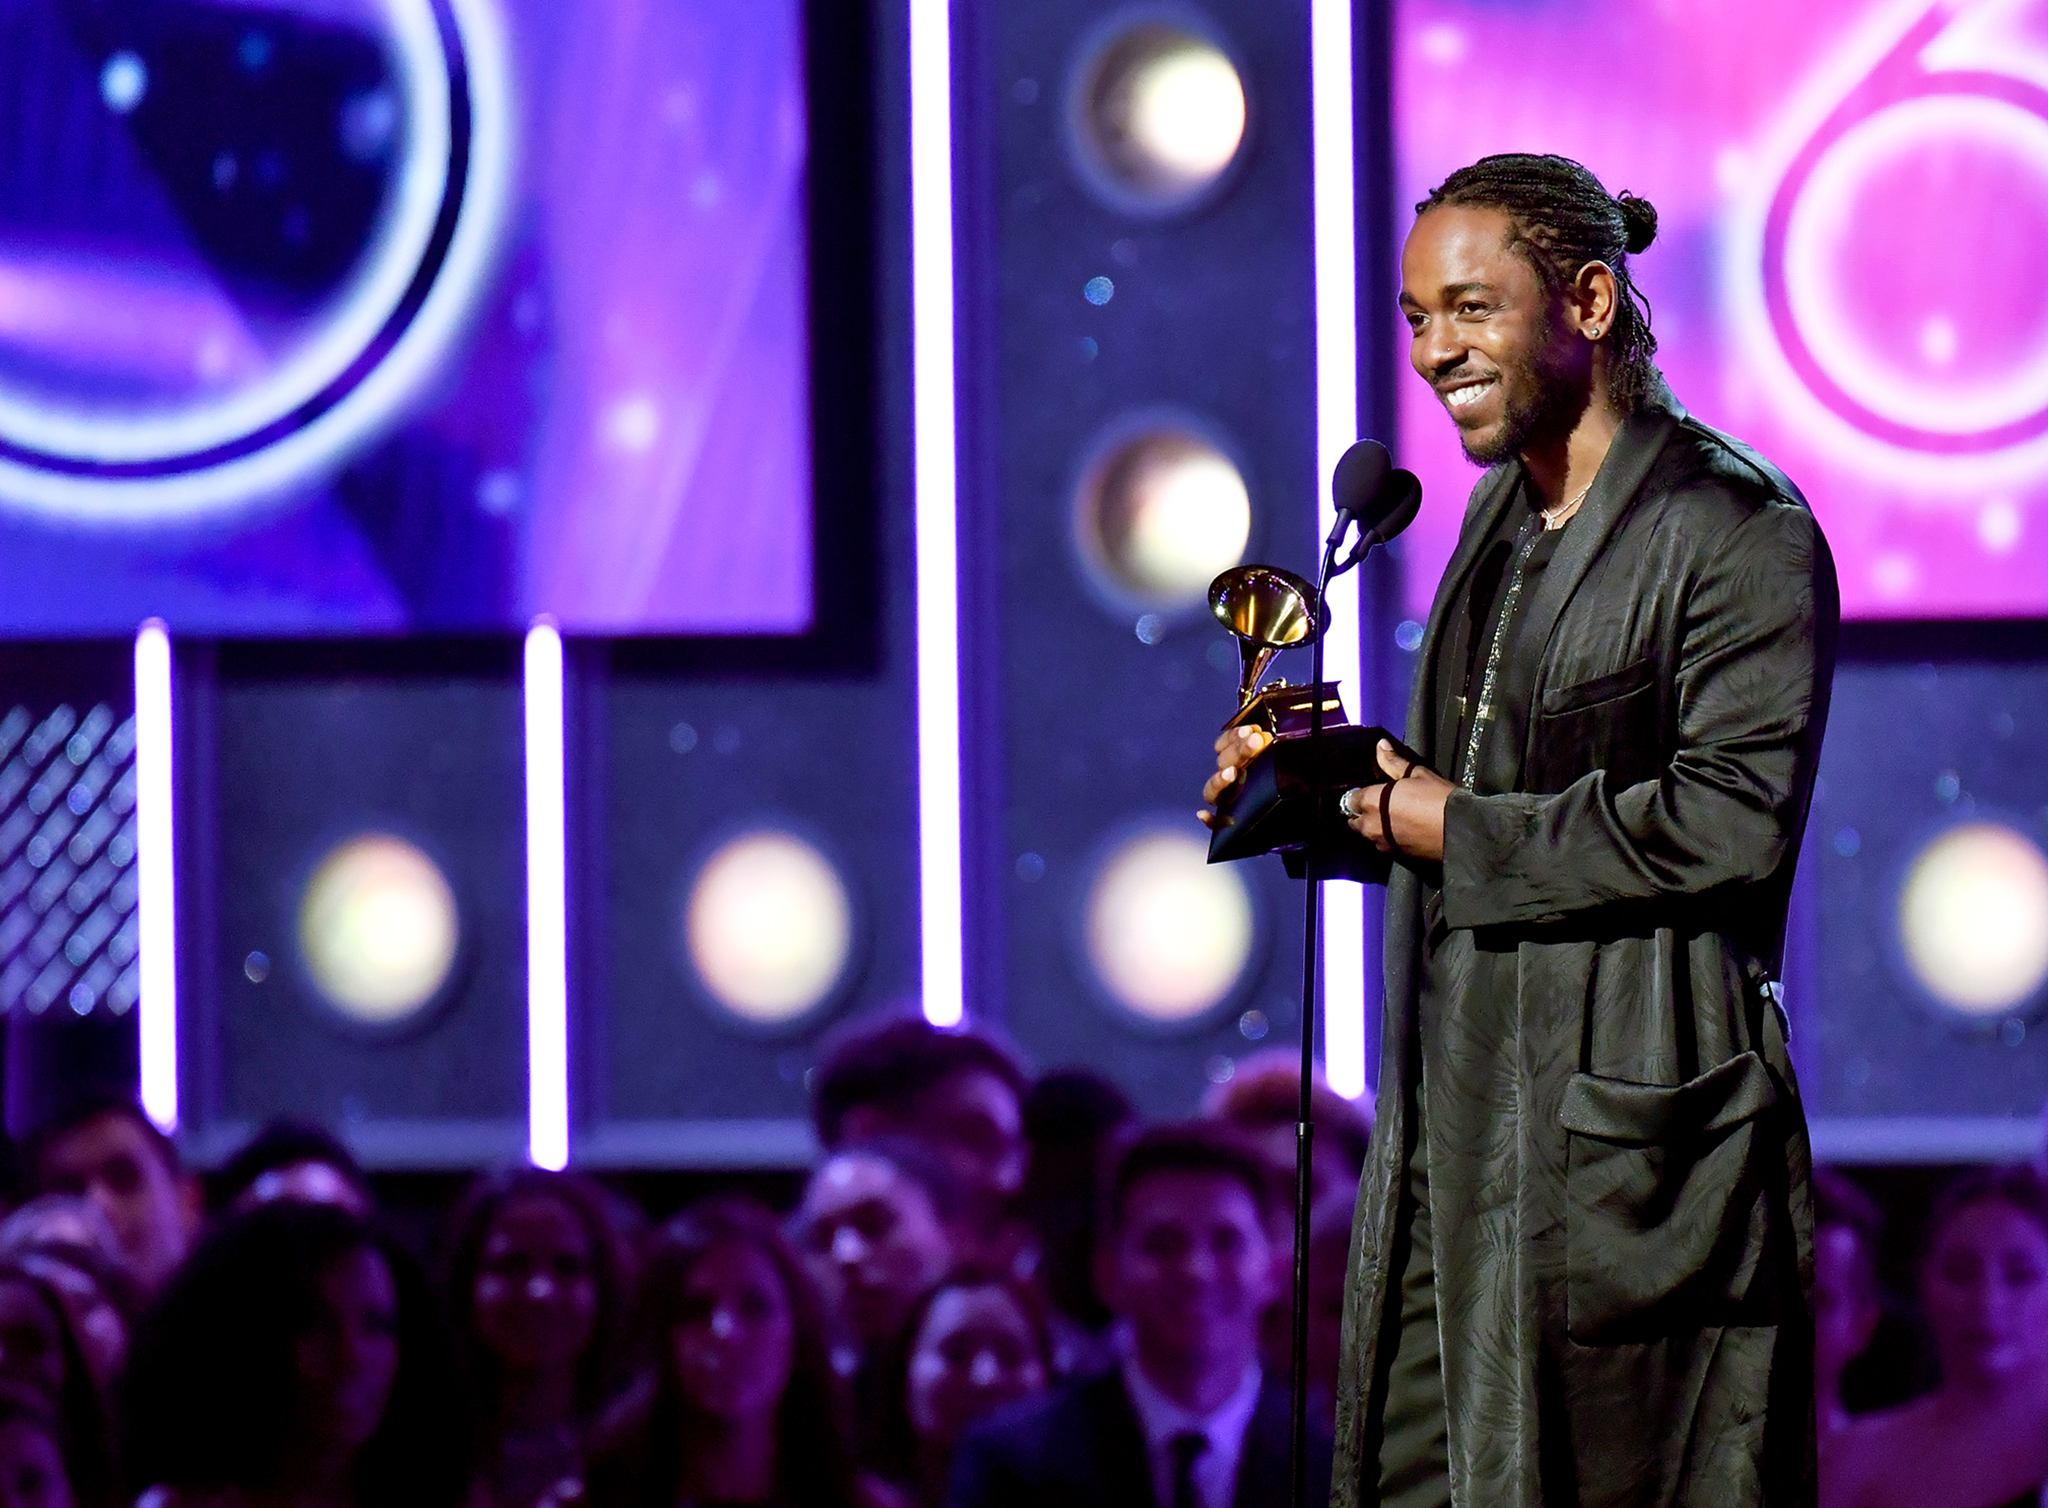 Recording artist Kendrick Lamar accepts award for Best Rap Album onstage during the 60th Annual Grammy Awards at Madison Square Garden on Jan. 28, 2018 in New York City. Jeff Kravitz—FilmMagic/Getty Images